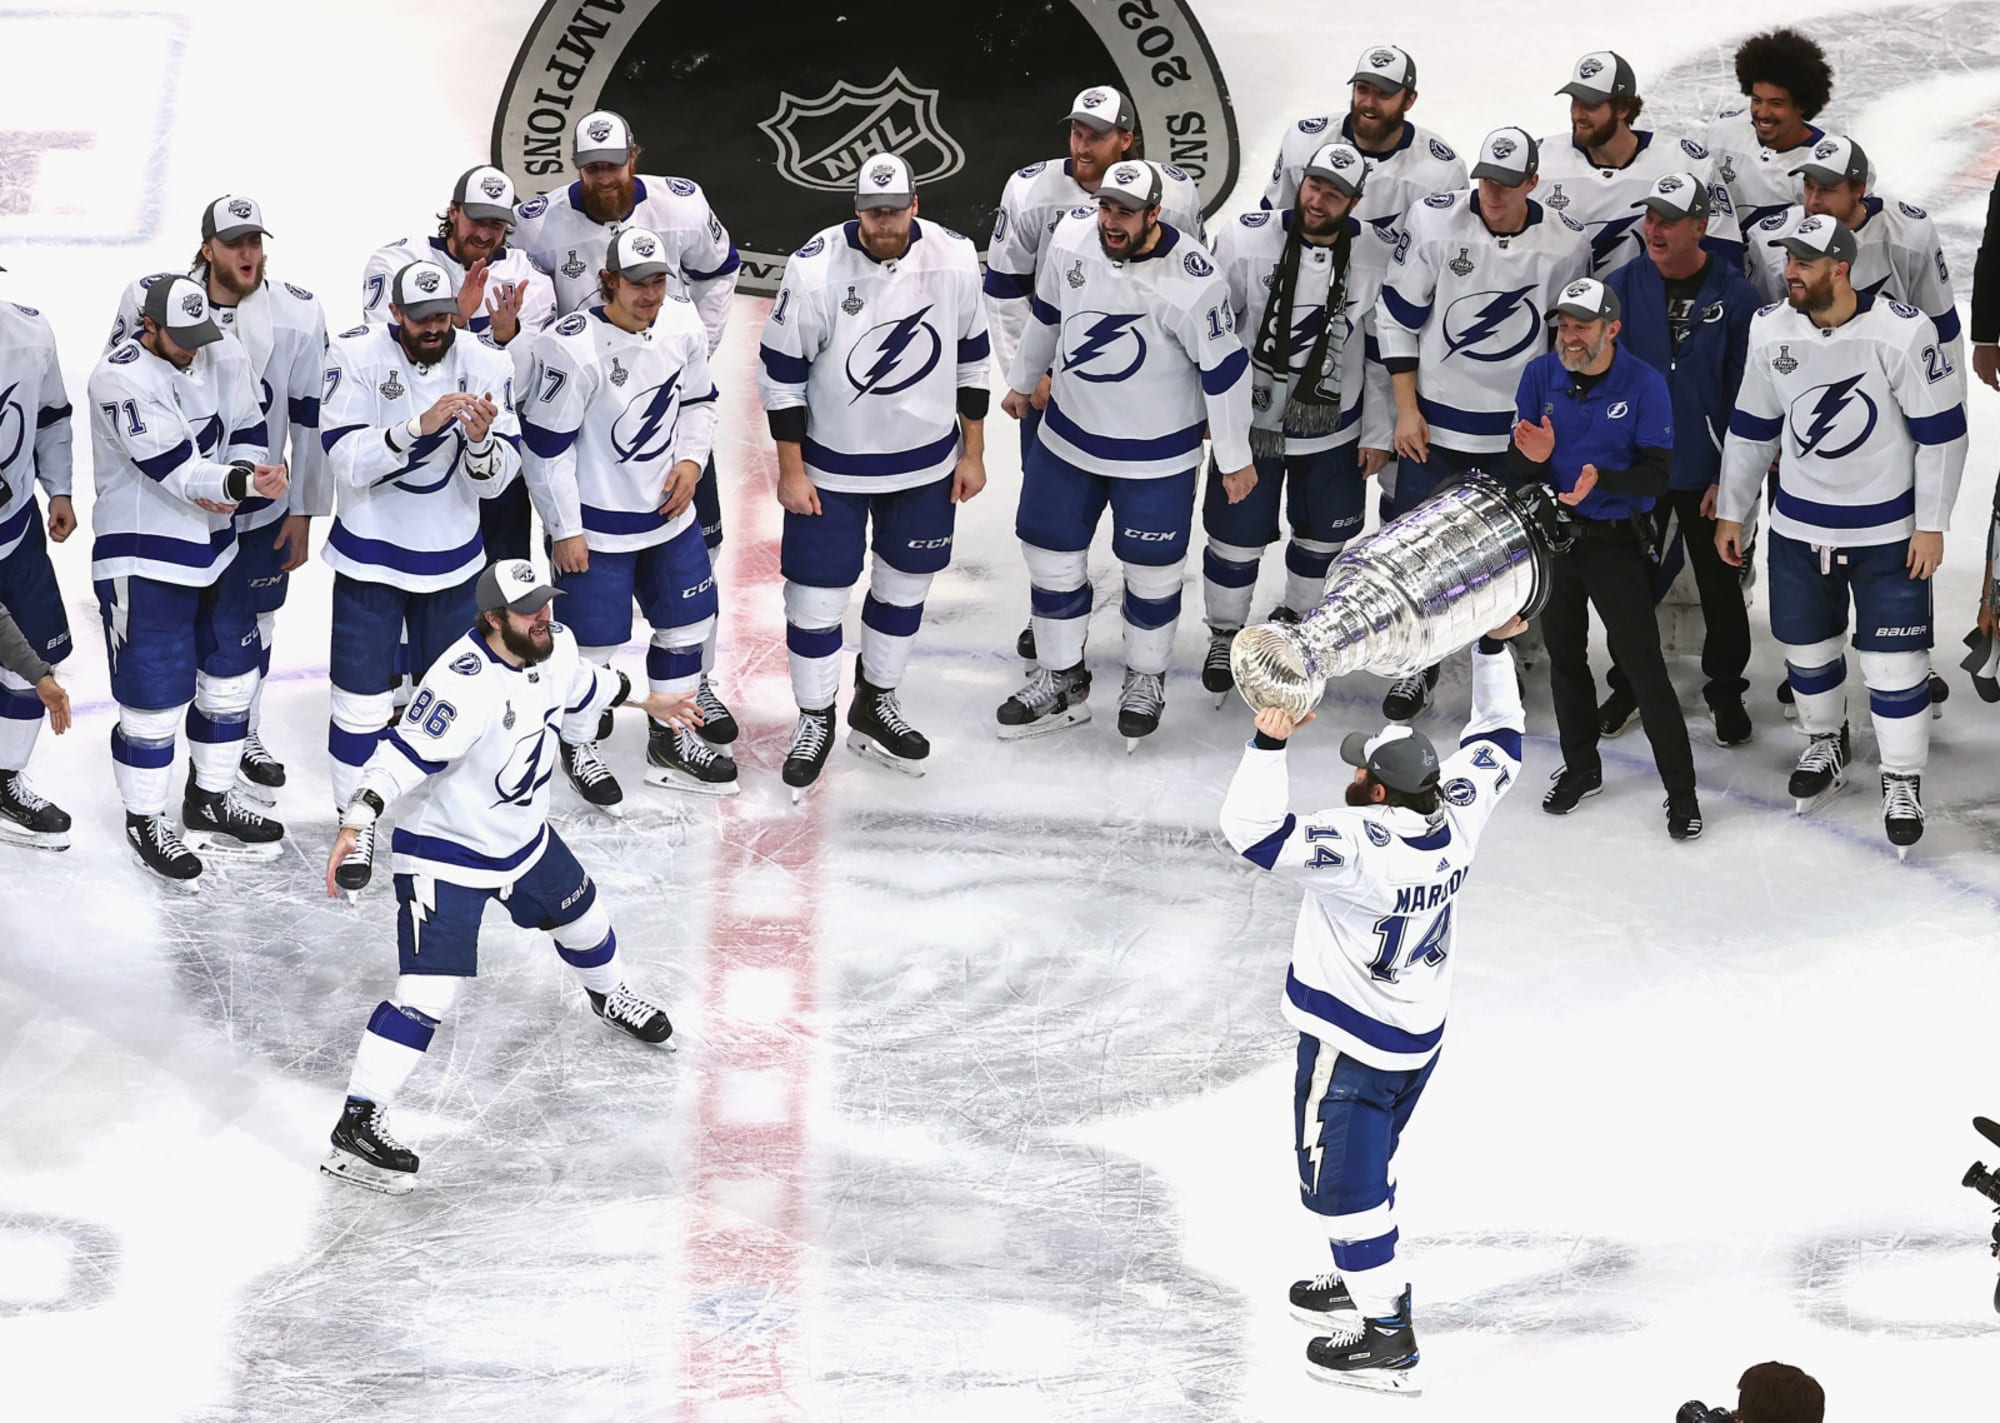 tampa bay lightning jeff halpern s celebration is incredibly tone deaf tampa bay lightning jeff halpern s